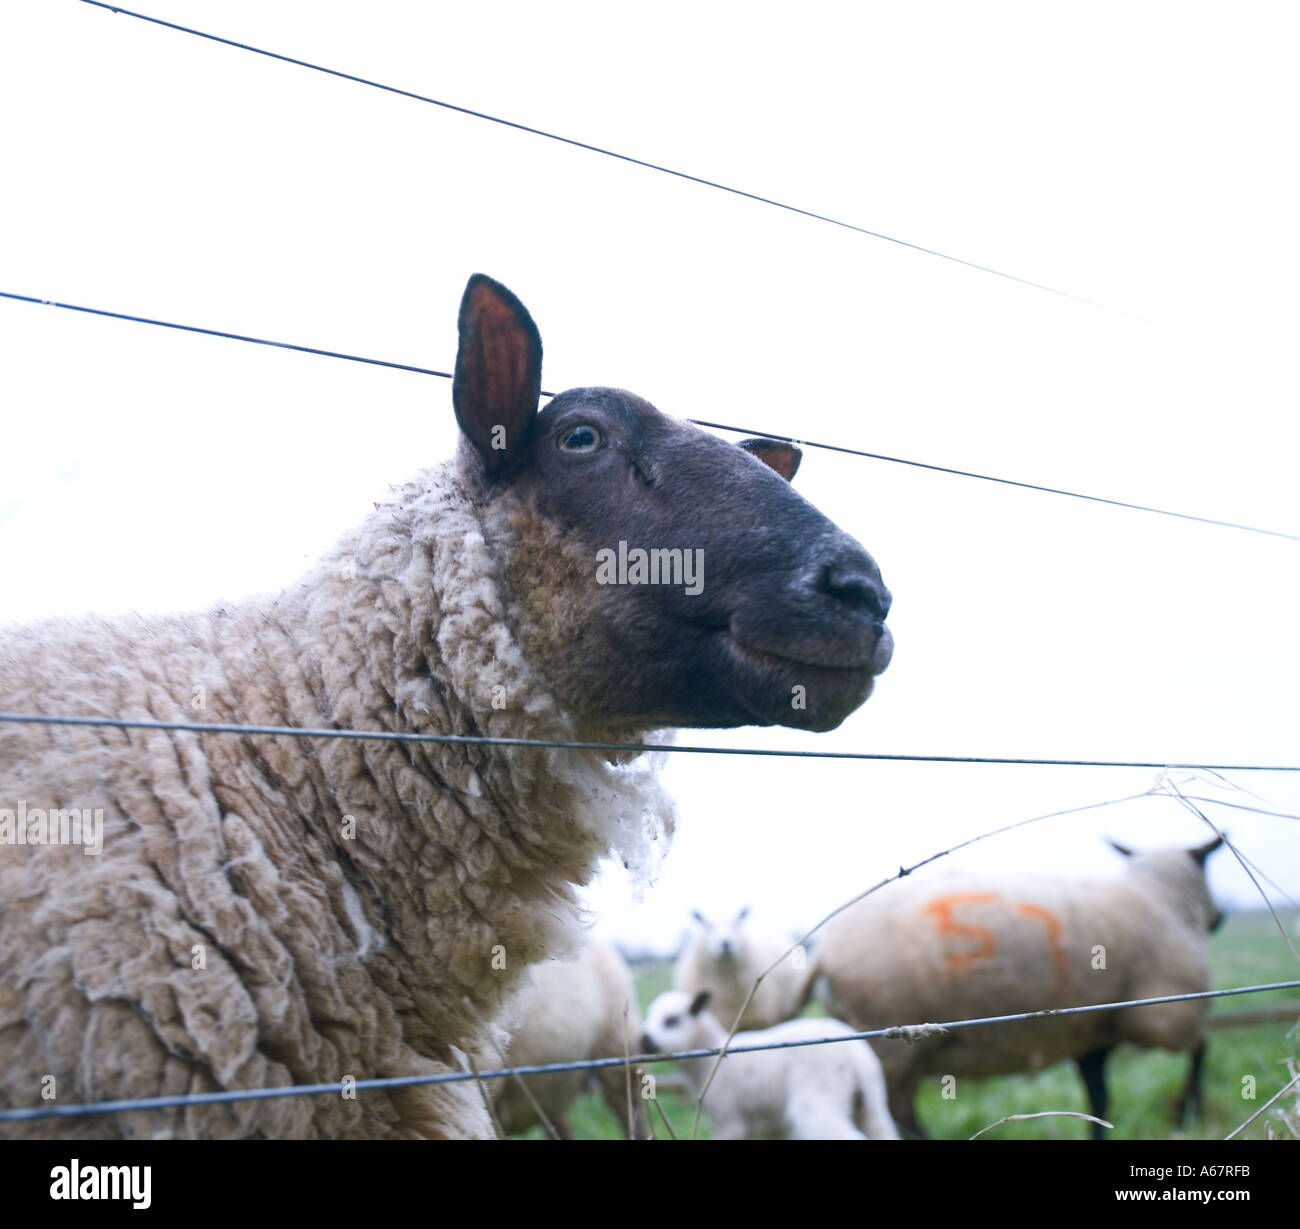 Wire Pen Stock Photos & Wire Pen Stock Images - Alamy